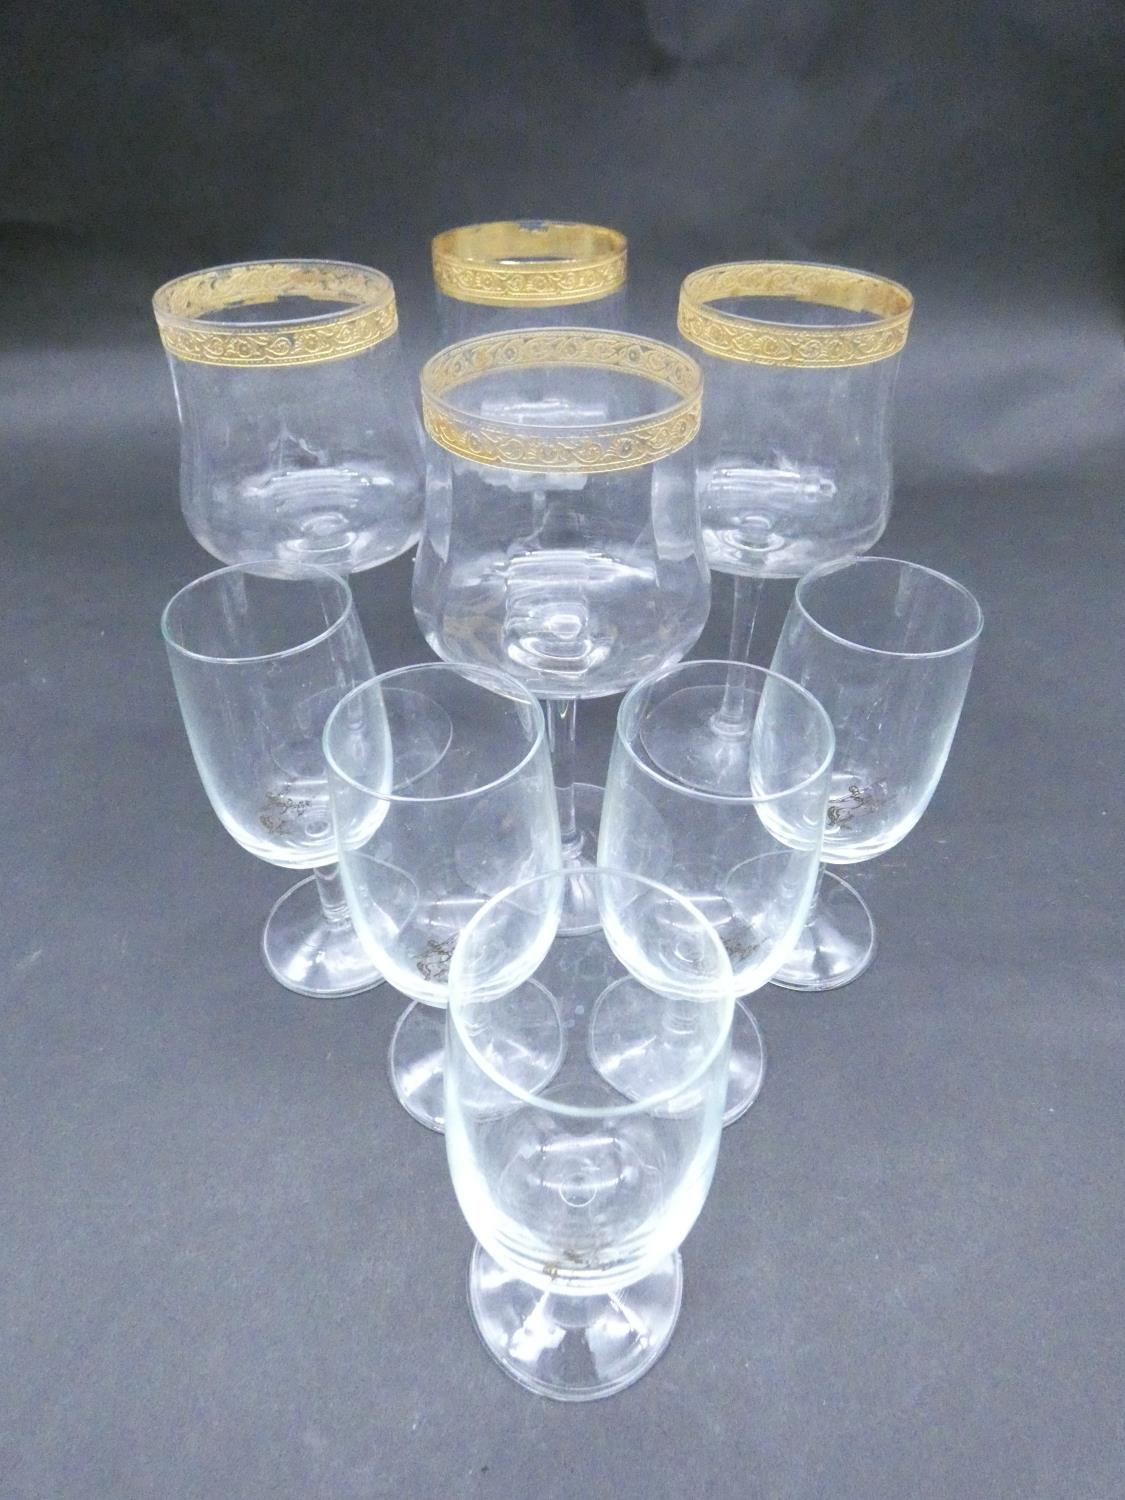 A collection of glasses. Including a set of five sherry glasses with gilded Orion symbols, along